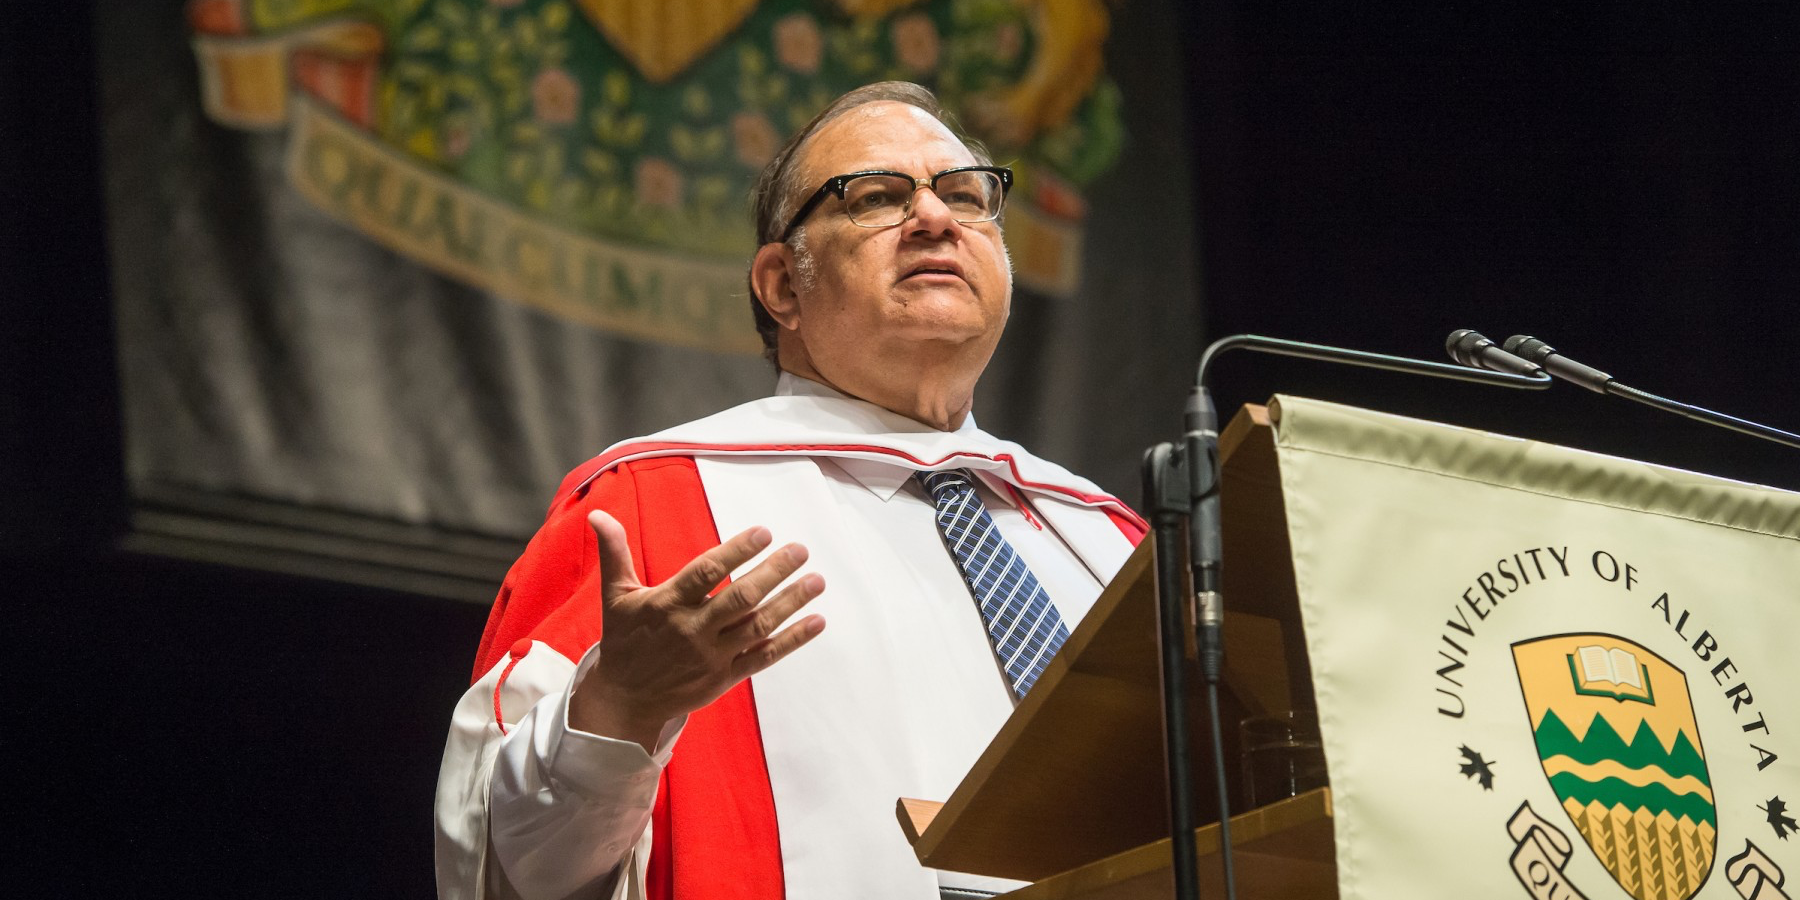 Former MLA Dennis Anderson received an honorary doctor of laws degree June 15. (Photo by Richard Siemens)